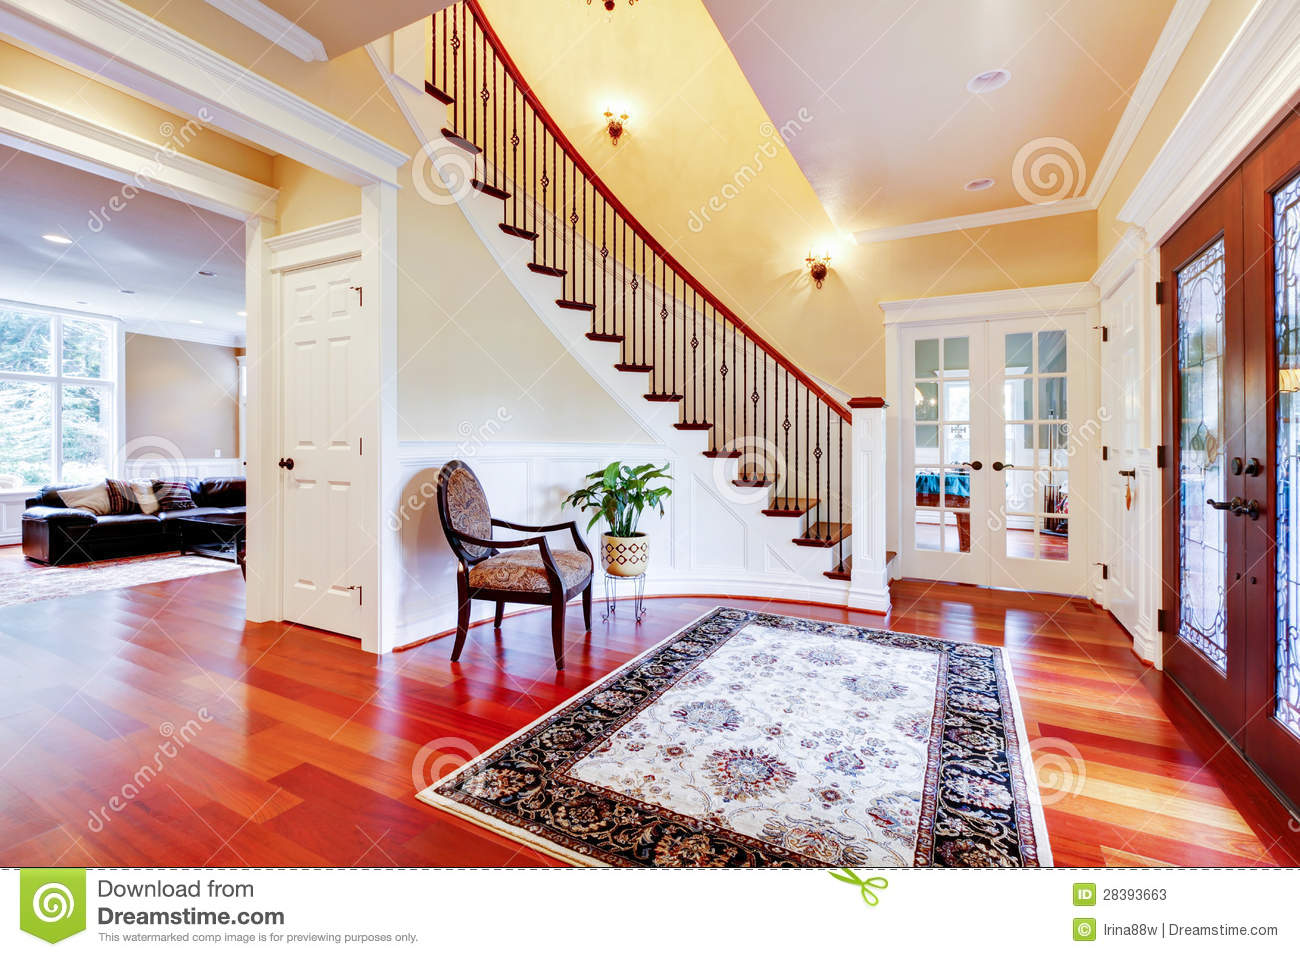 Luxury Home Entrance With Cherry Hardwood Floor And